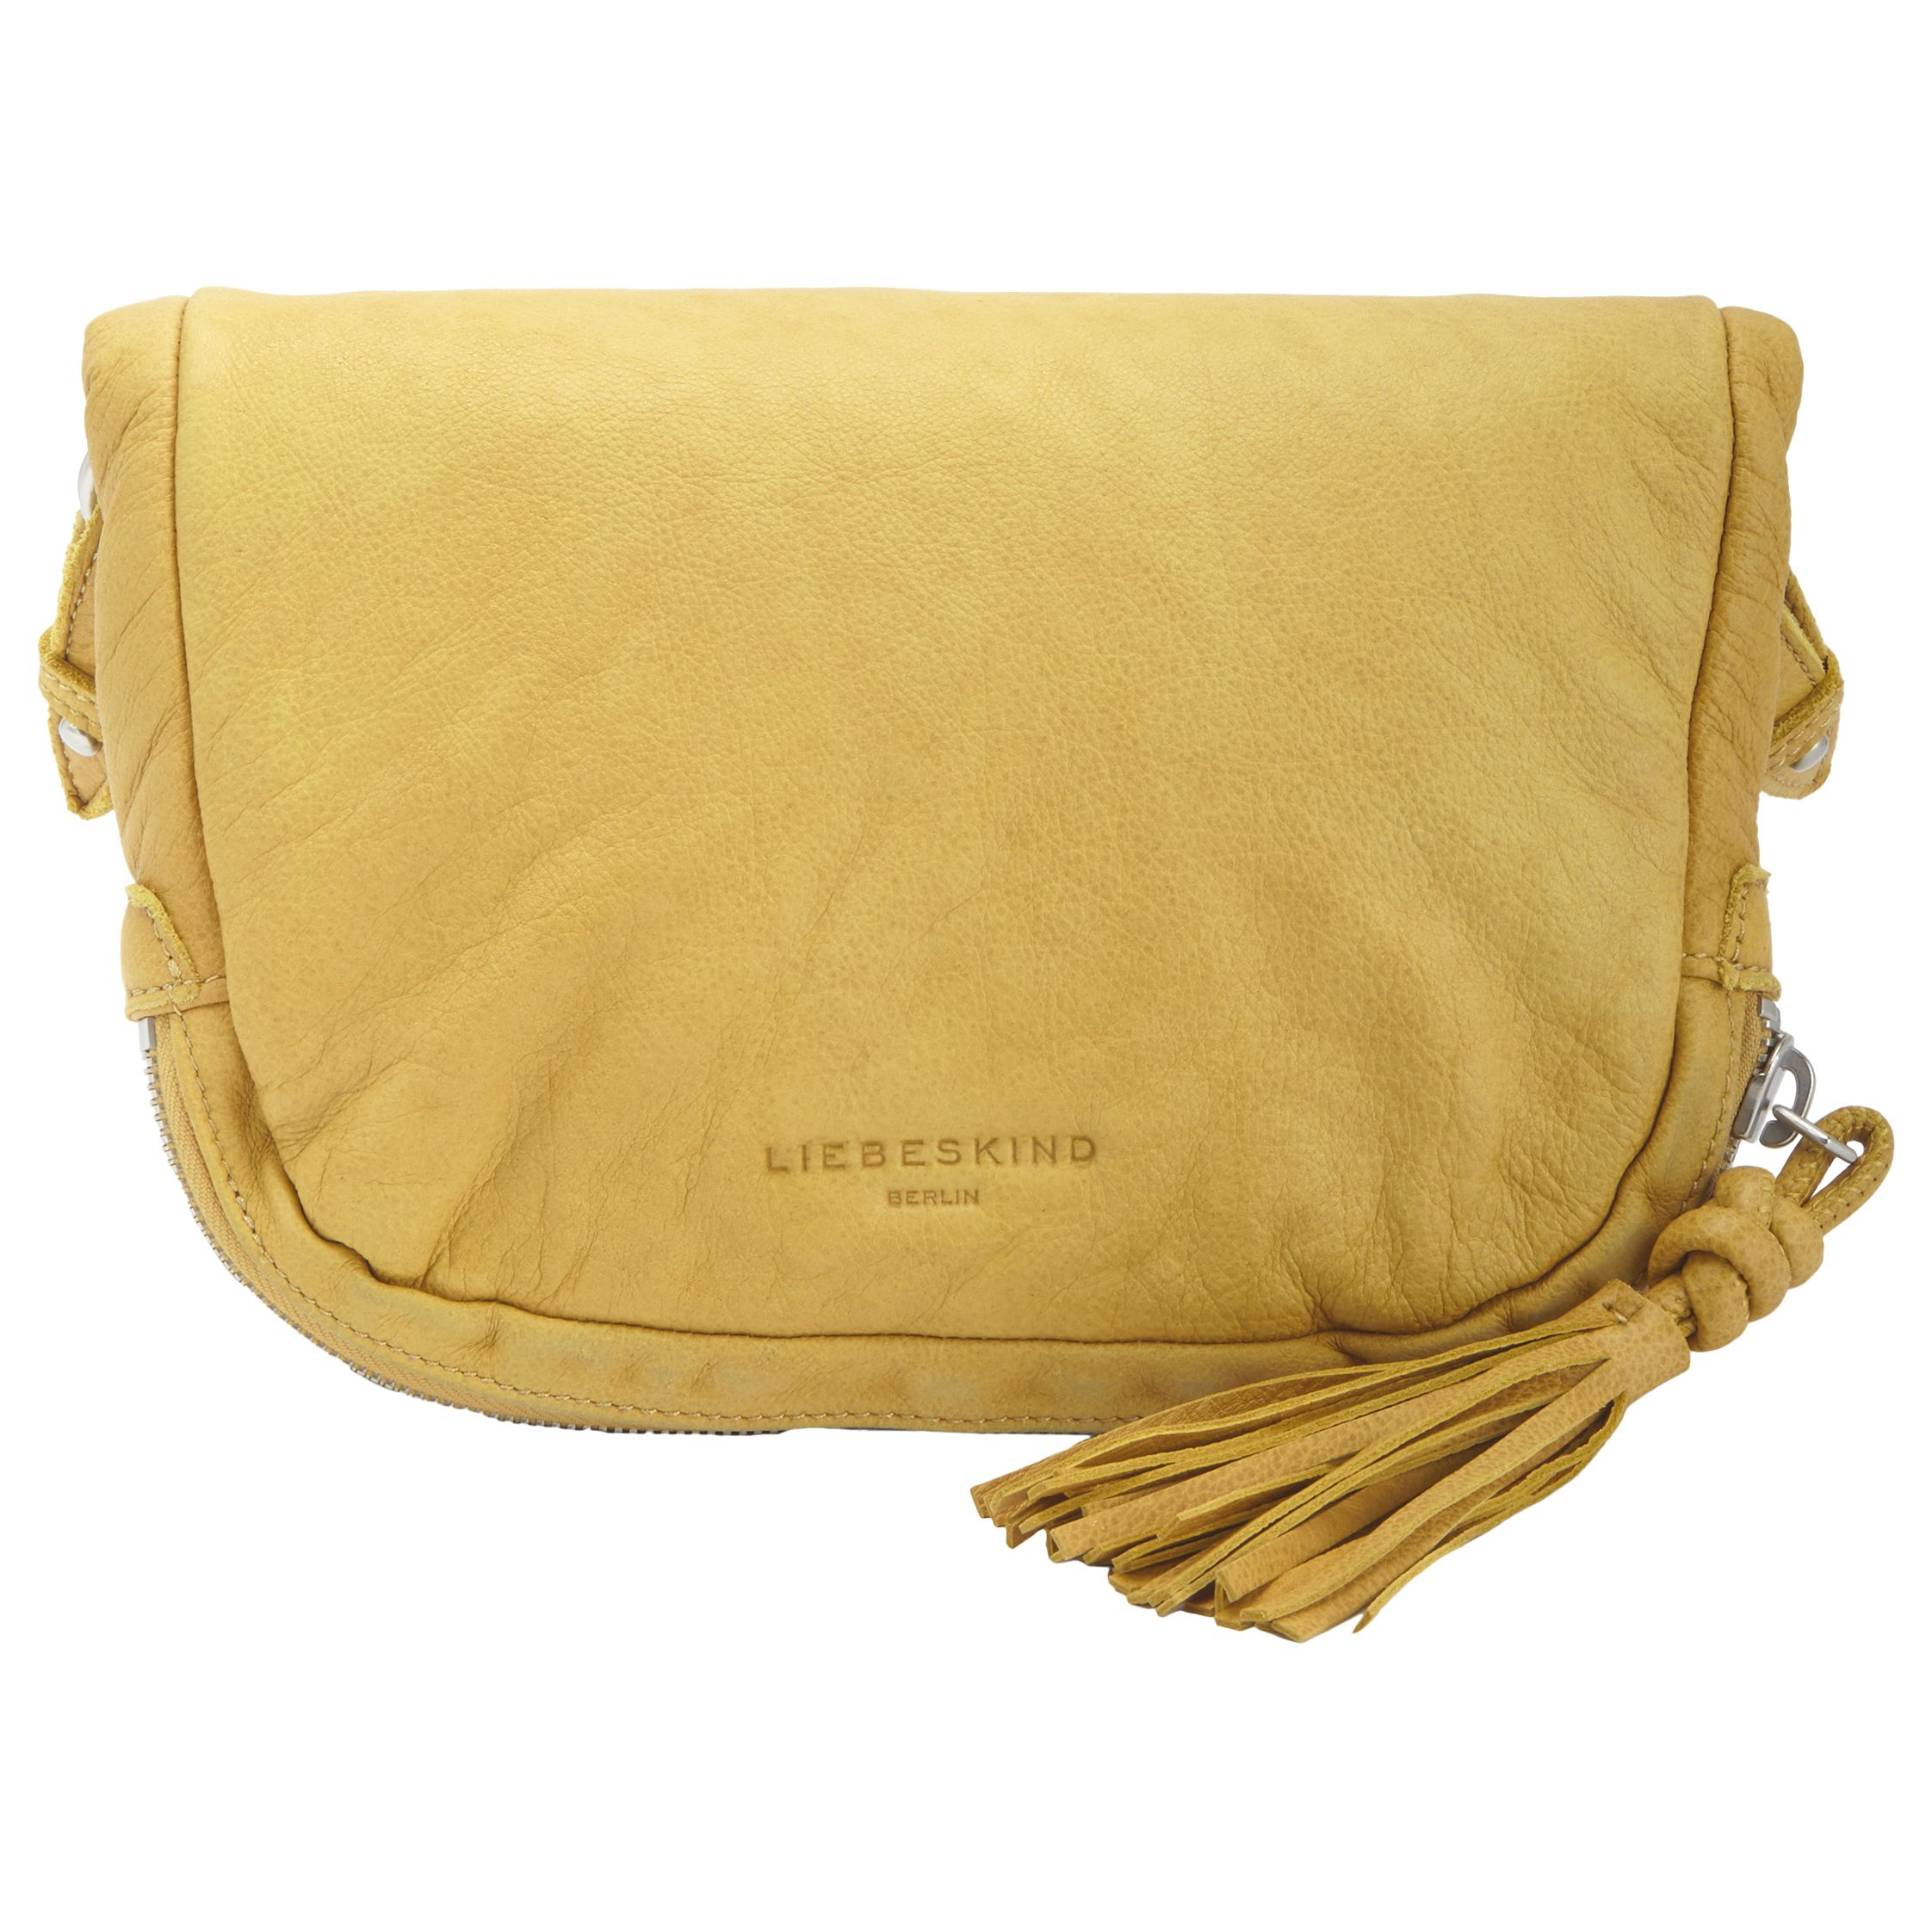 Liebeskind Liebeskind Suzuka F7 Leather Across Body Bag, Lime Green